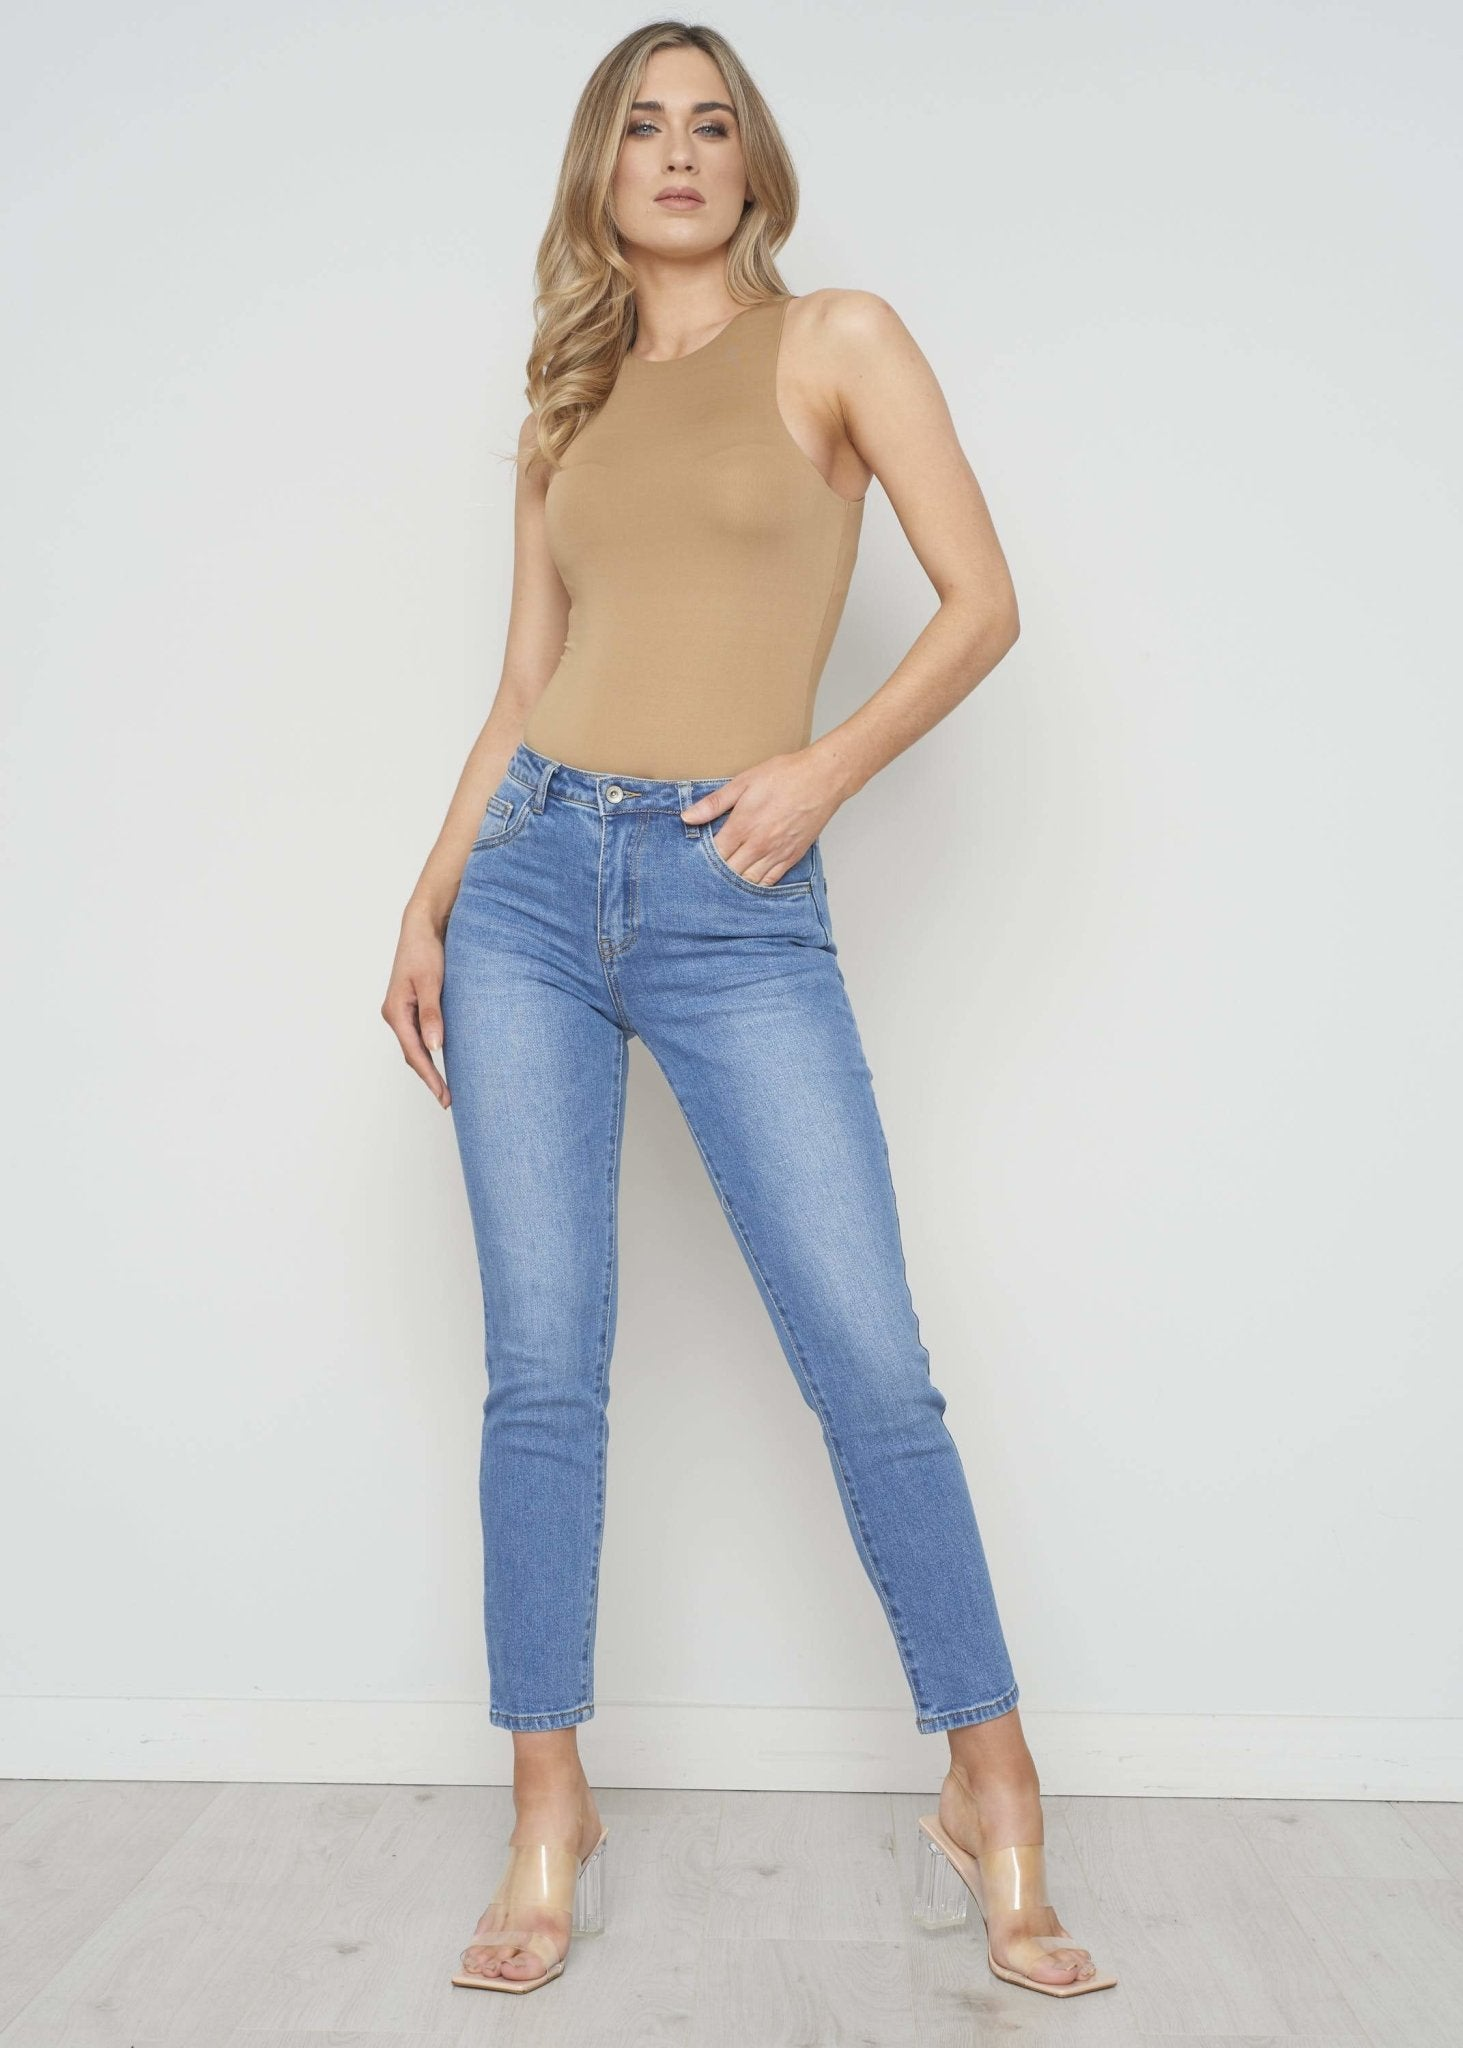 Cora Straight Leg Jean In Light Wash - The Walk in Wardrobe